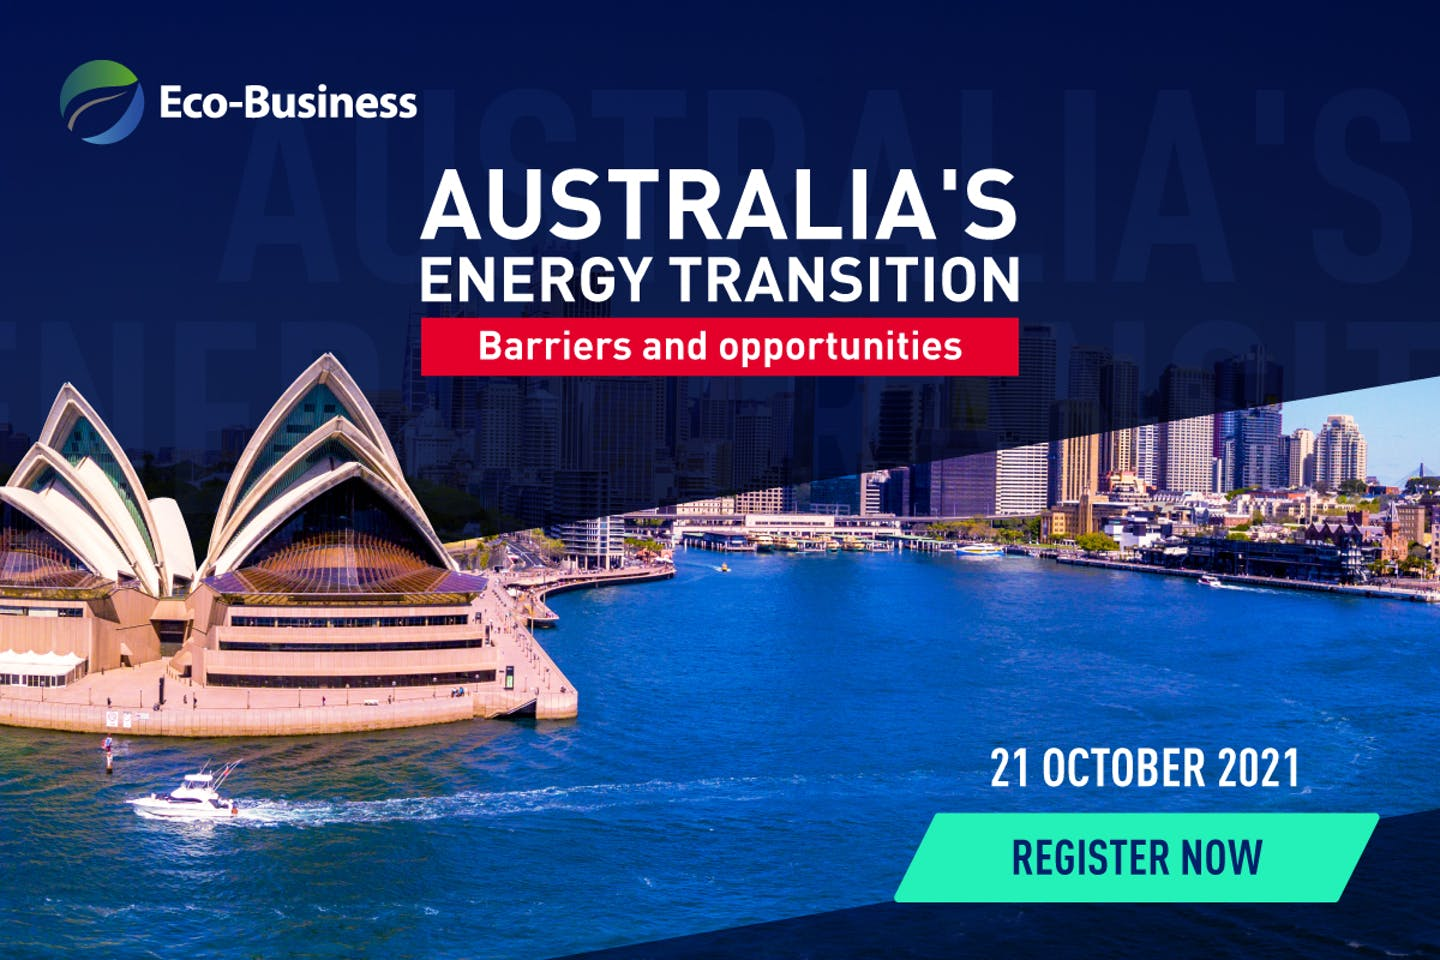 Australia's energy transition: barriers and opportunities